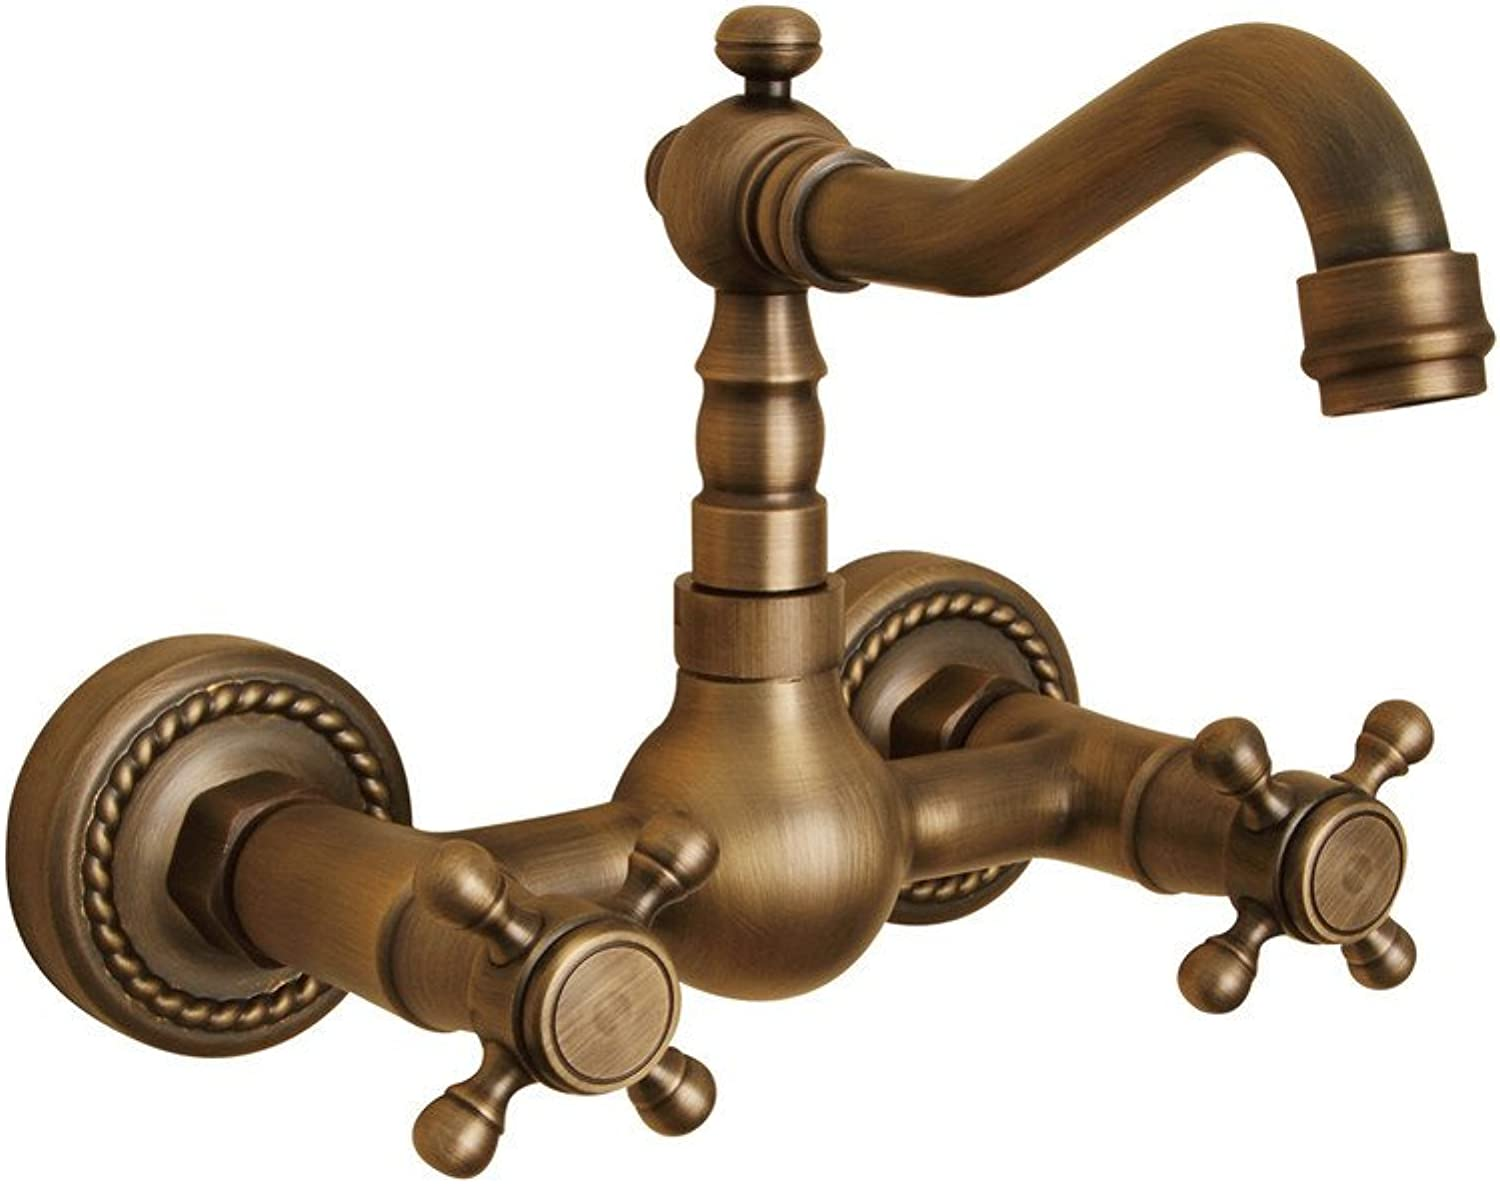 SYW European Antique Brass in-Wall redating Kitchen Faucet hot and Cold Temperature Faucet Sink Sink Faucet